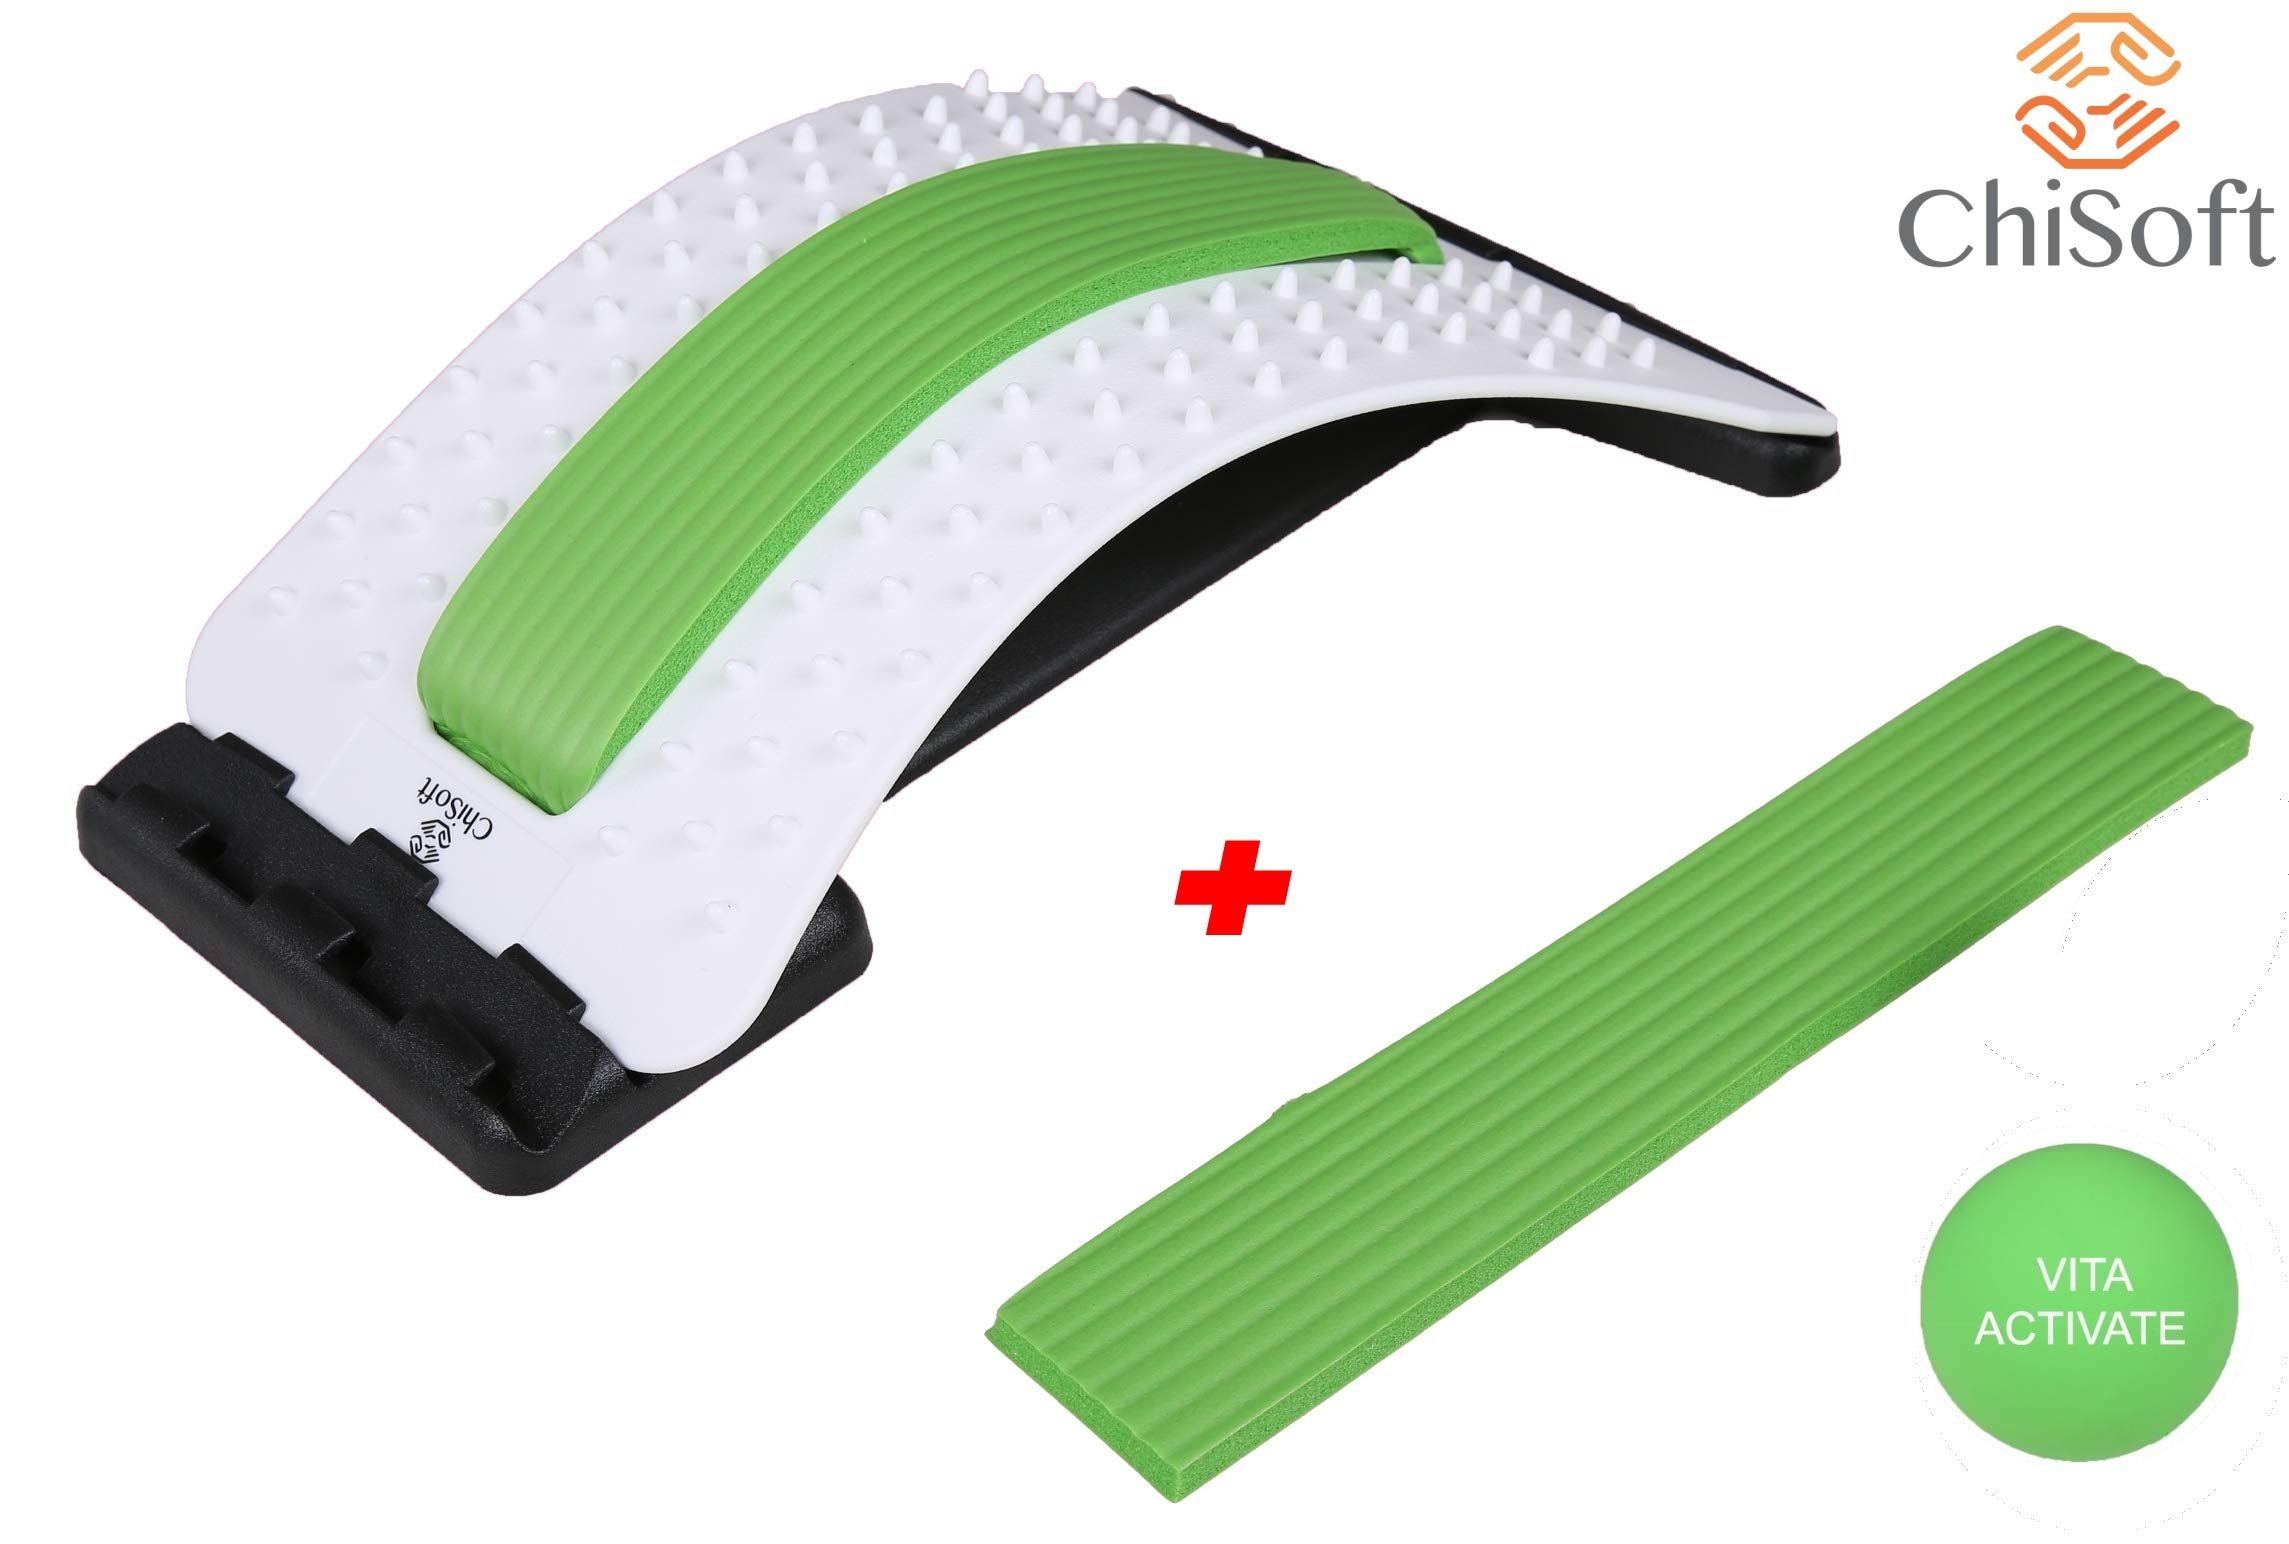 Best Arched Back Stretcher As Seen Doctors TV - CHISOFT (2nd Edition) Lumbar Stretching Device + Extra Cushion Foam + Trigger Point Massage Ball, Improve Posture, Sciatica Back Pain Relief